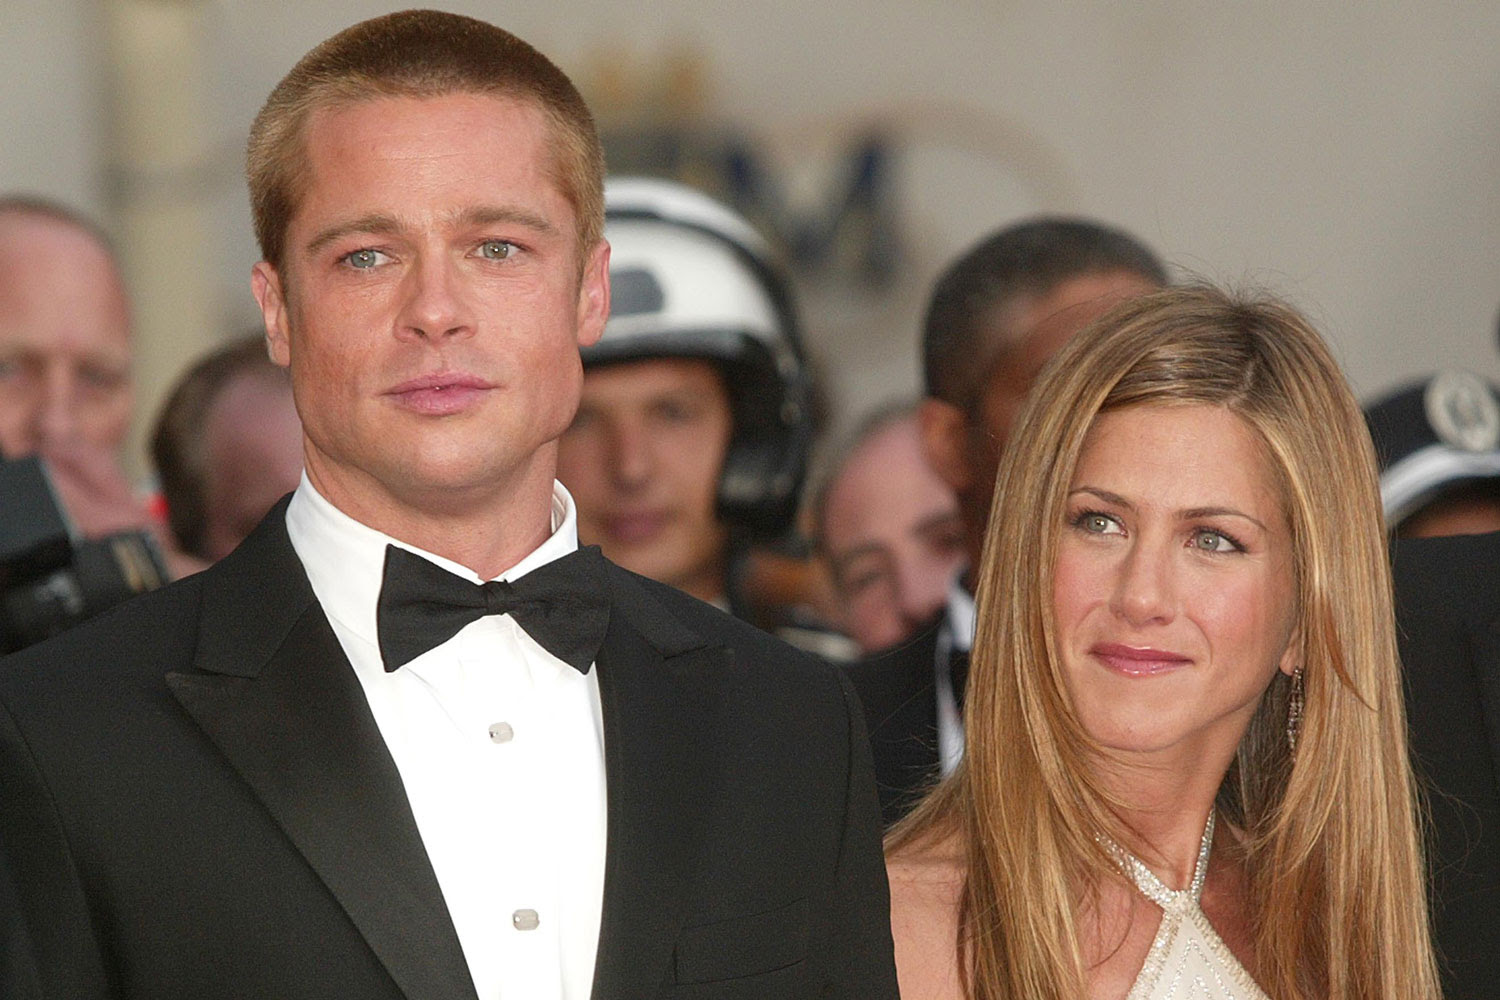 The Home Brad Pitt And Jennifer Aniston Shared Together Is ...